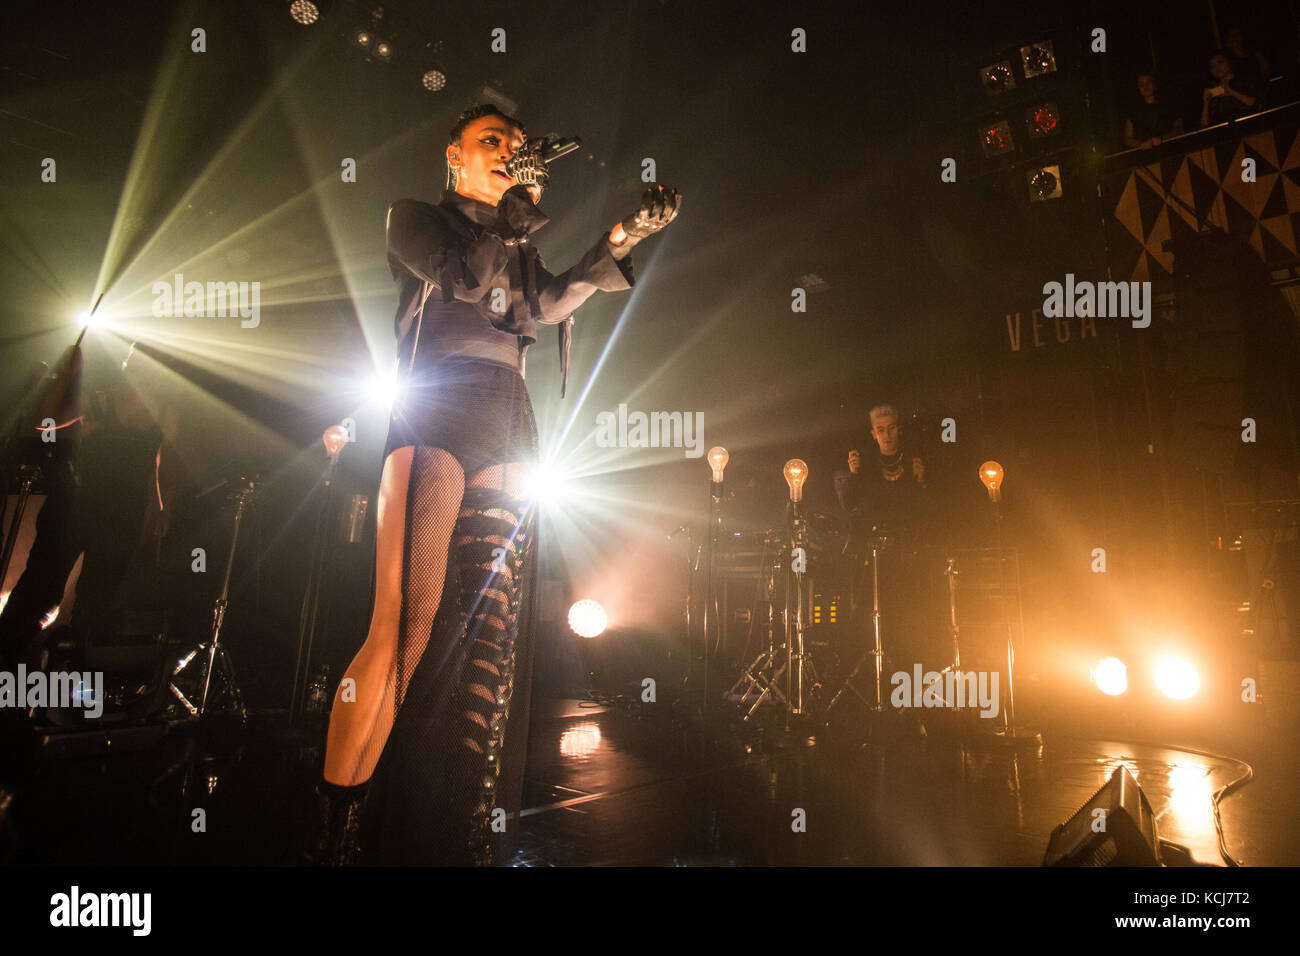 FKA twigs, the British singer, songwriter and music producer performs a live concert at VEGA in Copenhagen. Denmark, - Stock Image